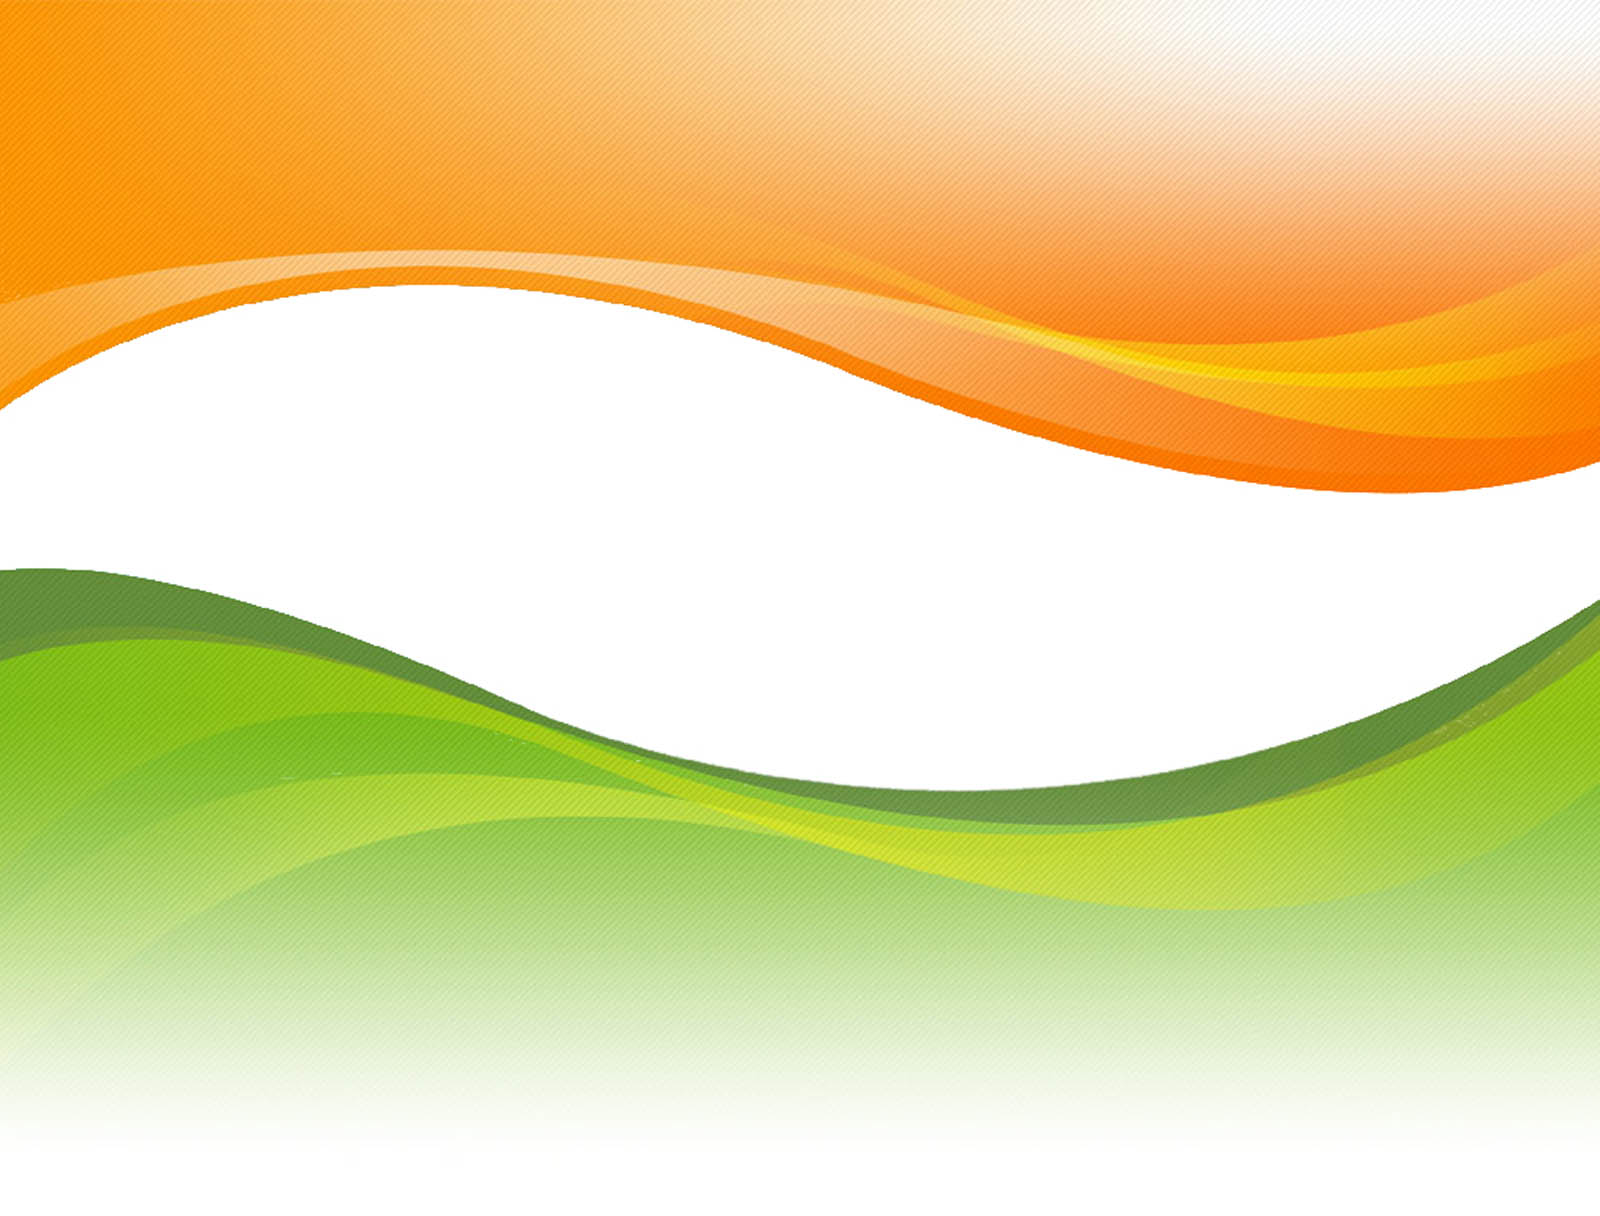 India Flag Wallpapers 2017 Wallpaper Cave